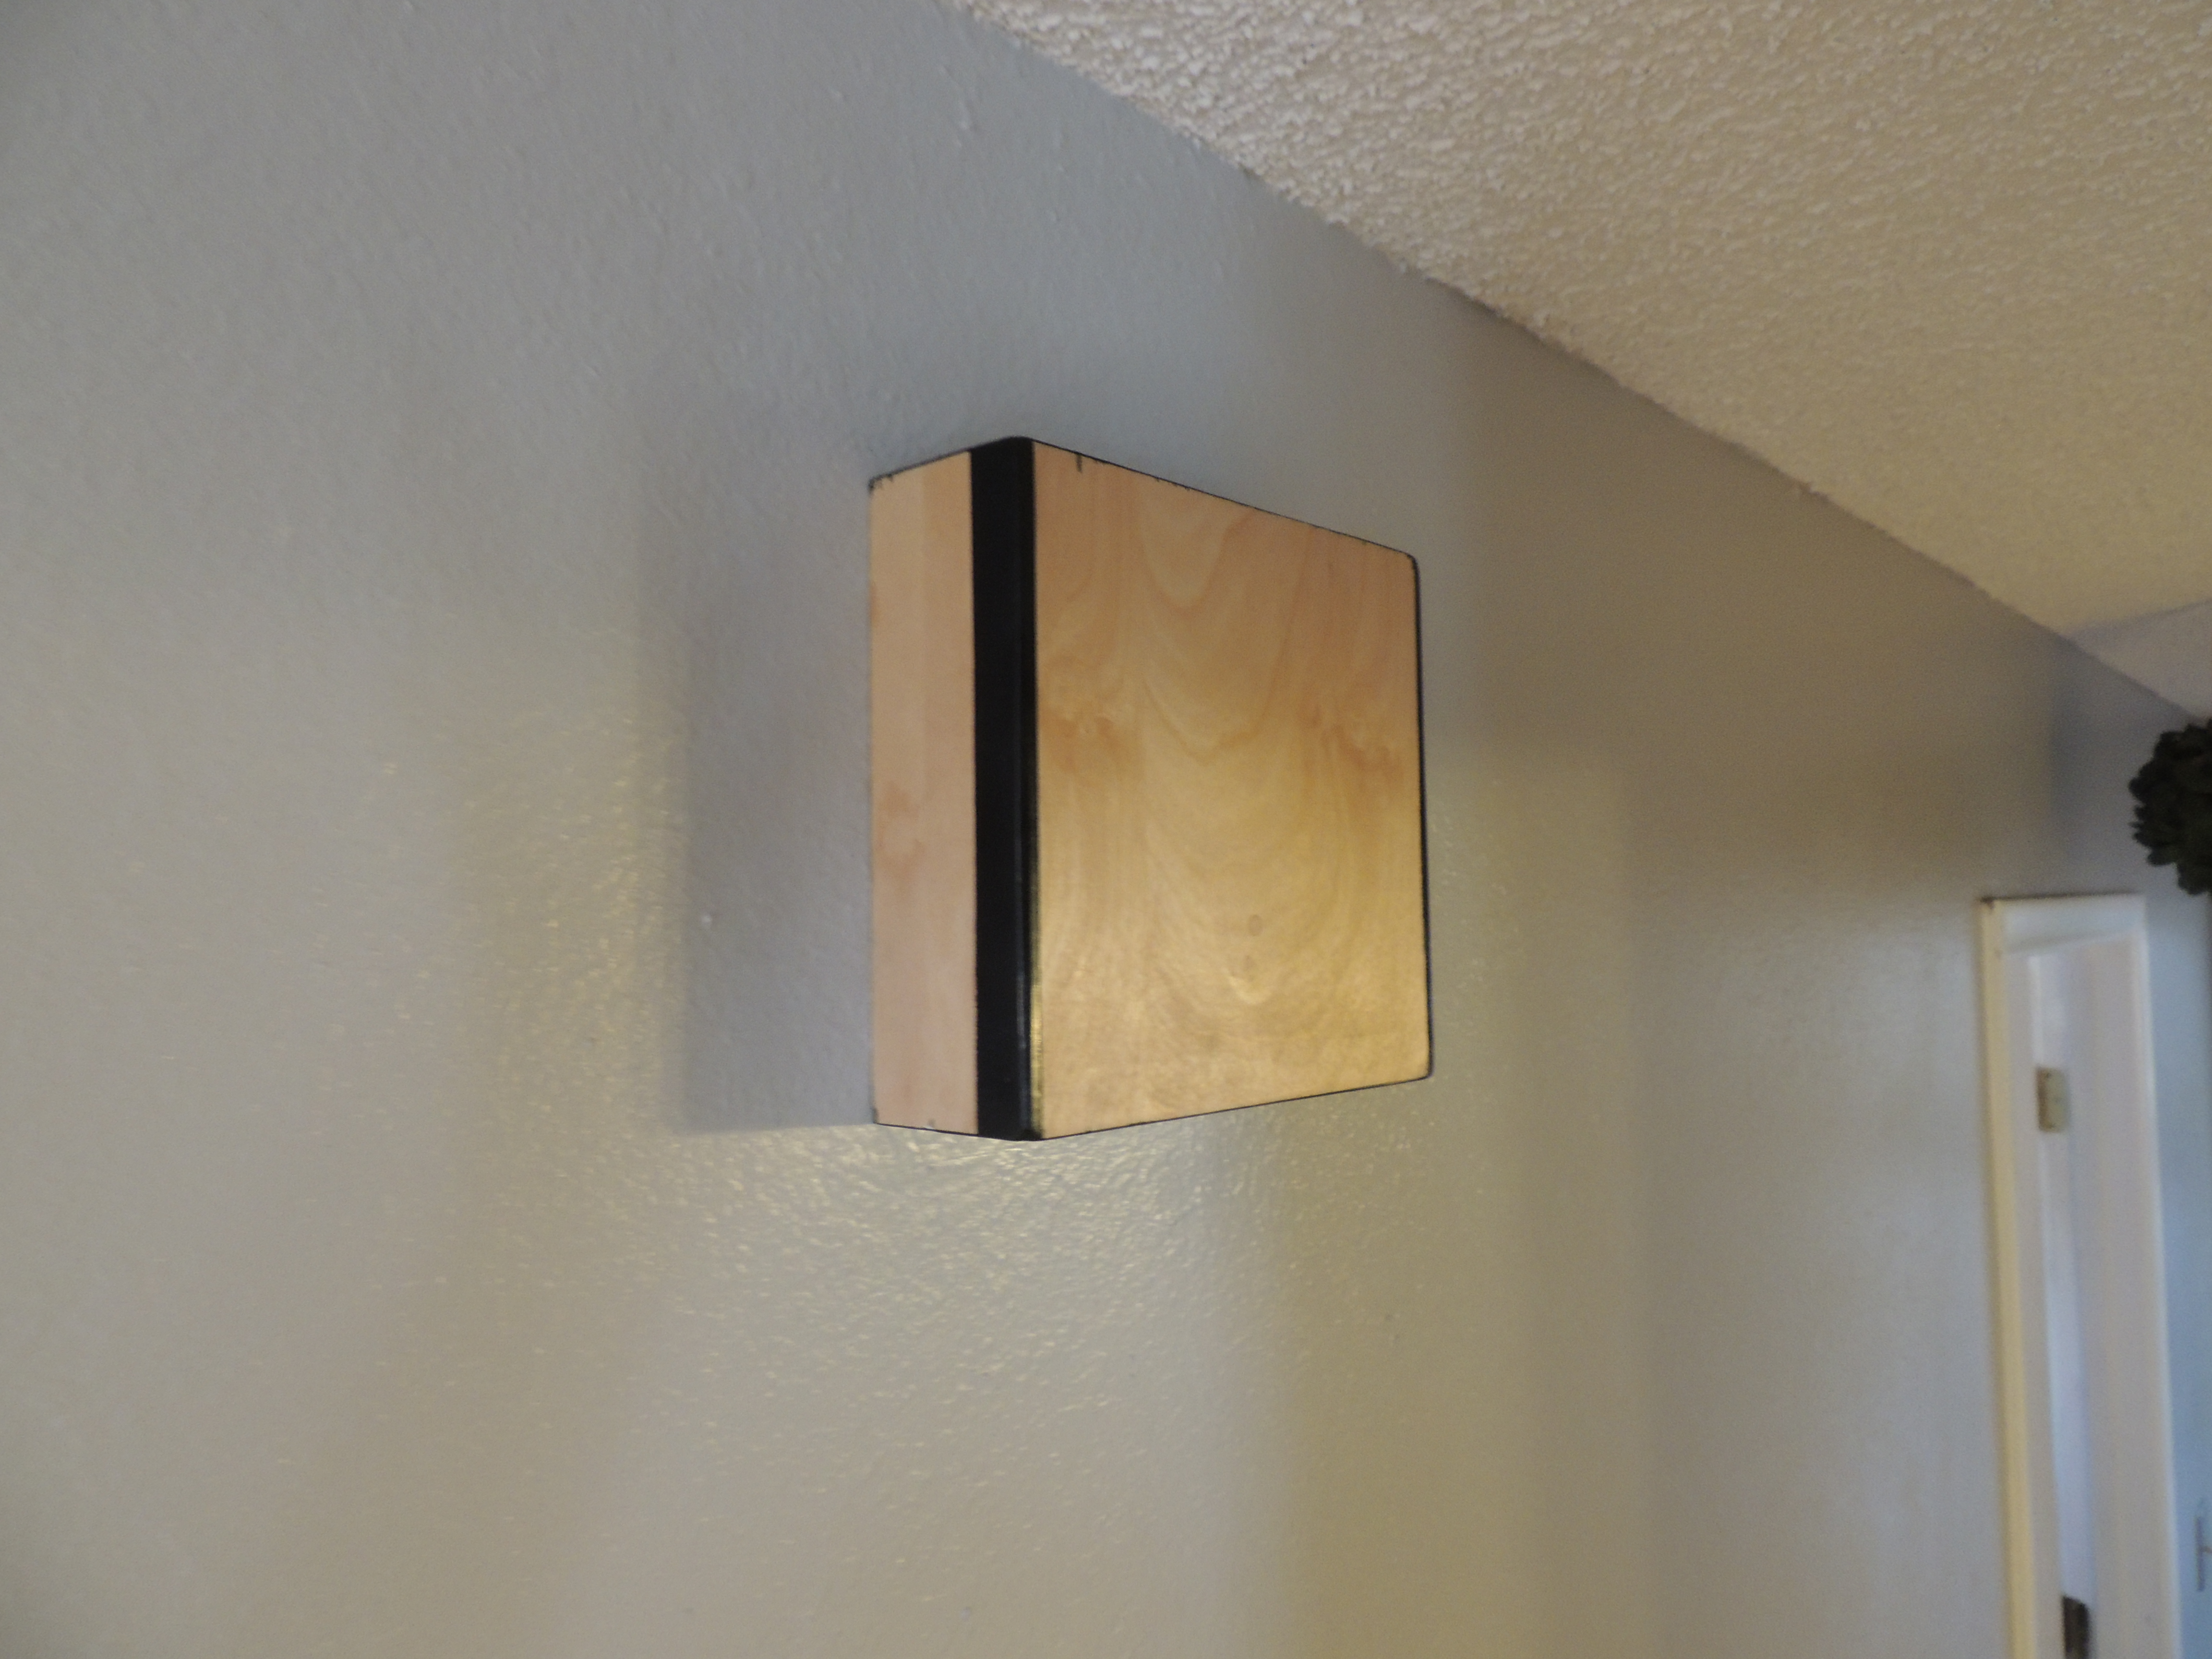 Diy Wall Light Cover : Doorbell Cover Diy & Turned A Wall Light Sconce Into My New Doorbell Chime Cover